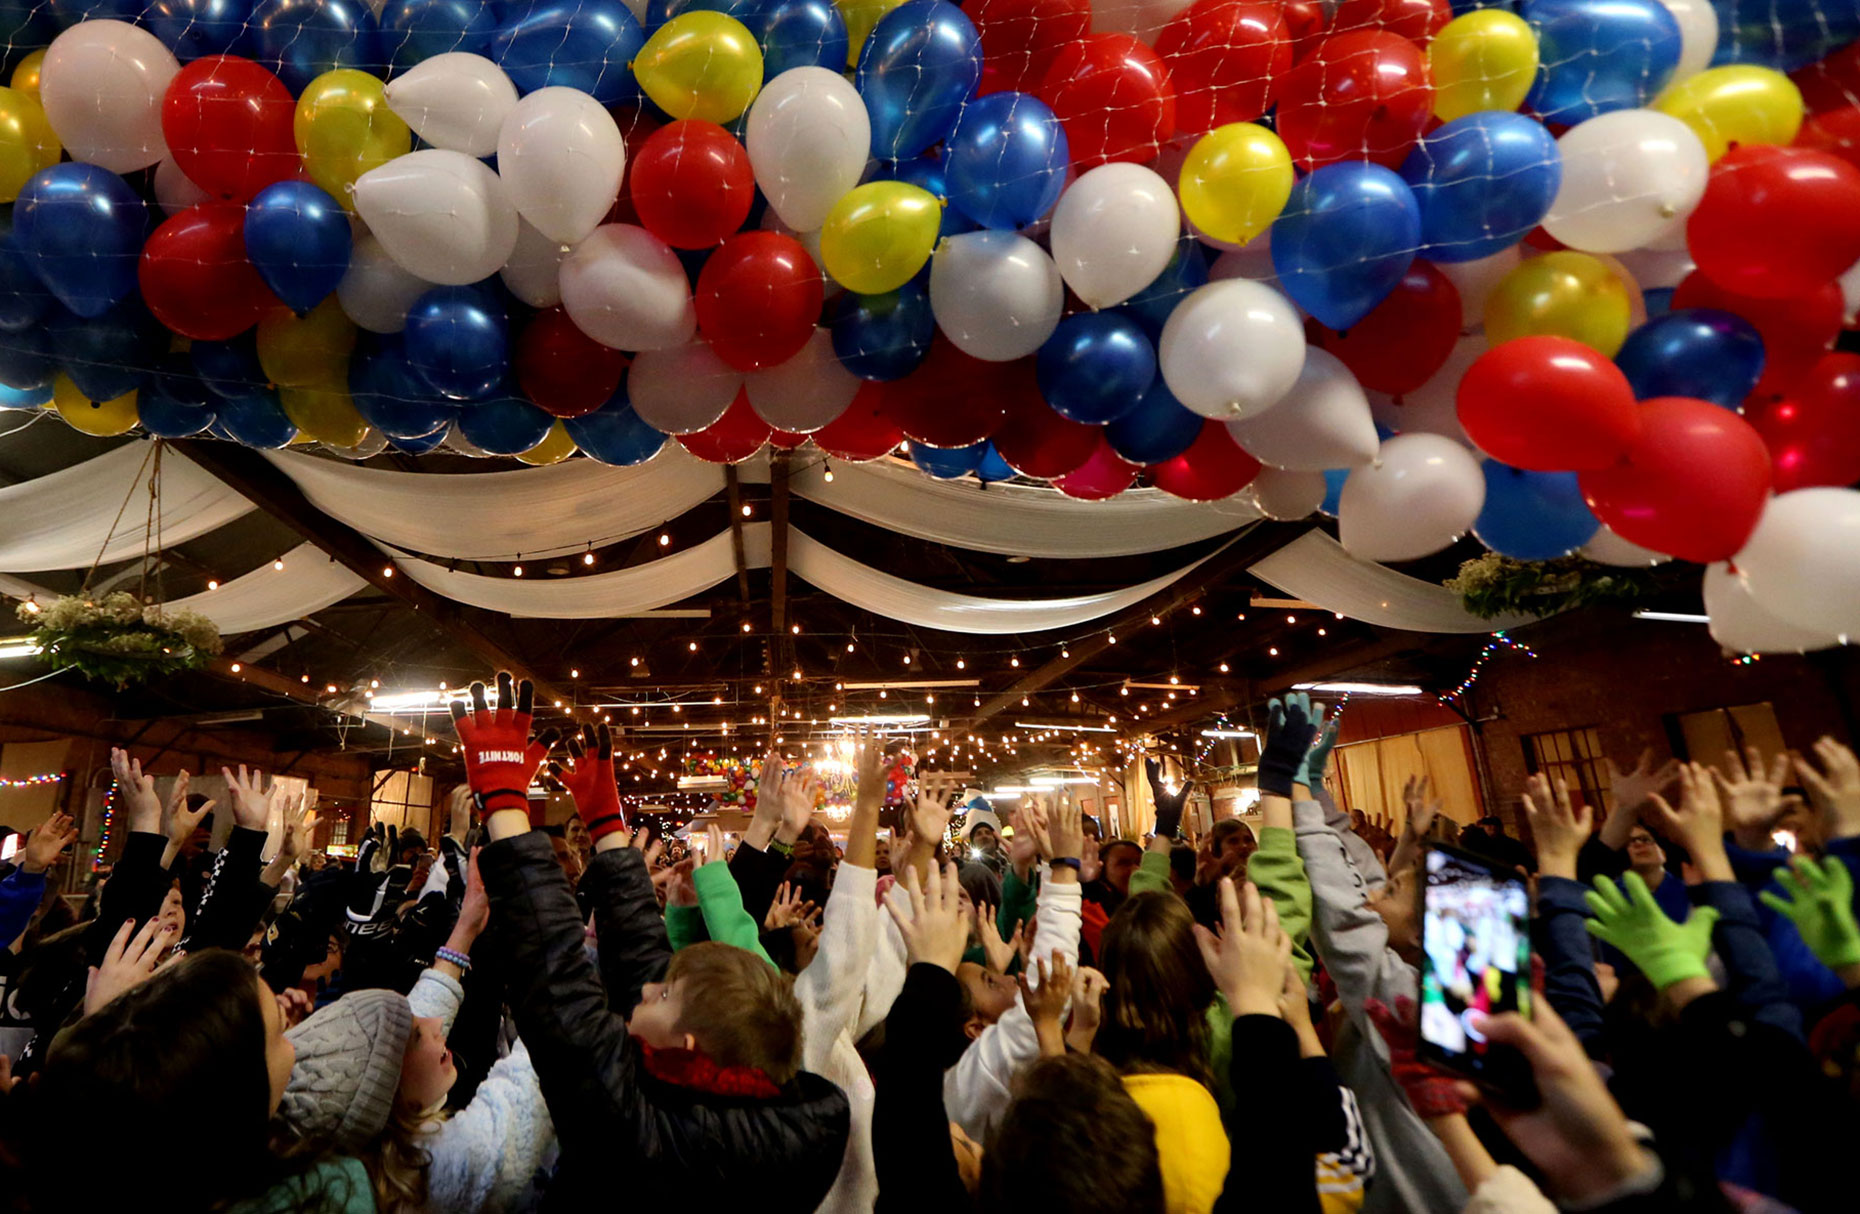 2020 balloons drop to welcome new year